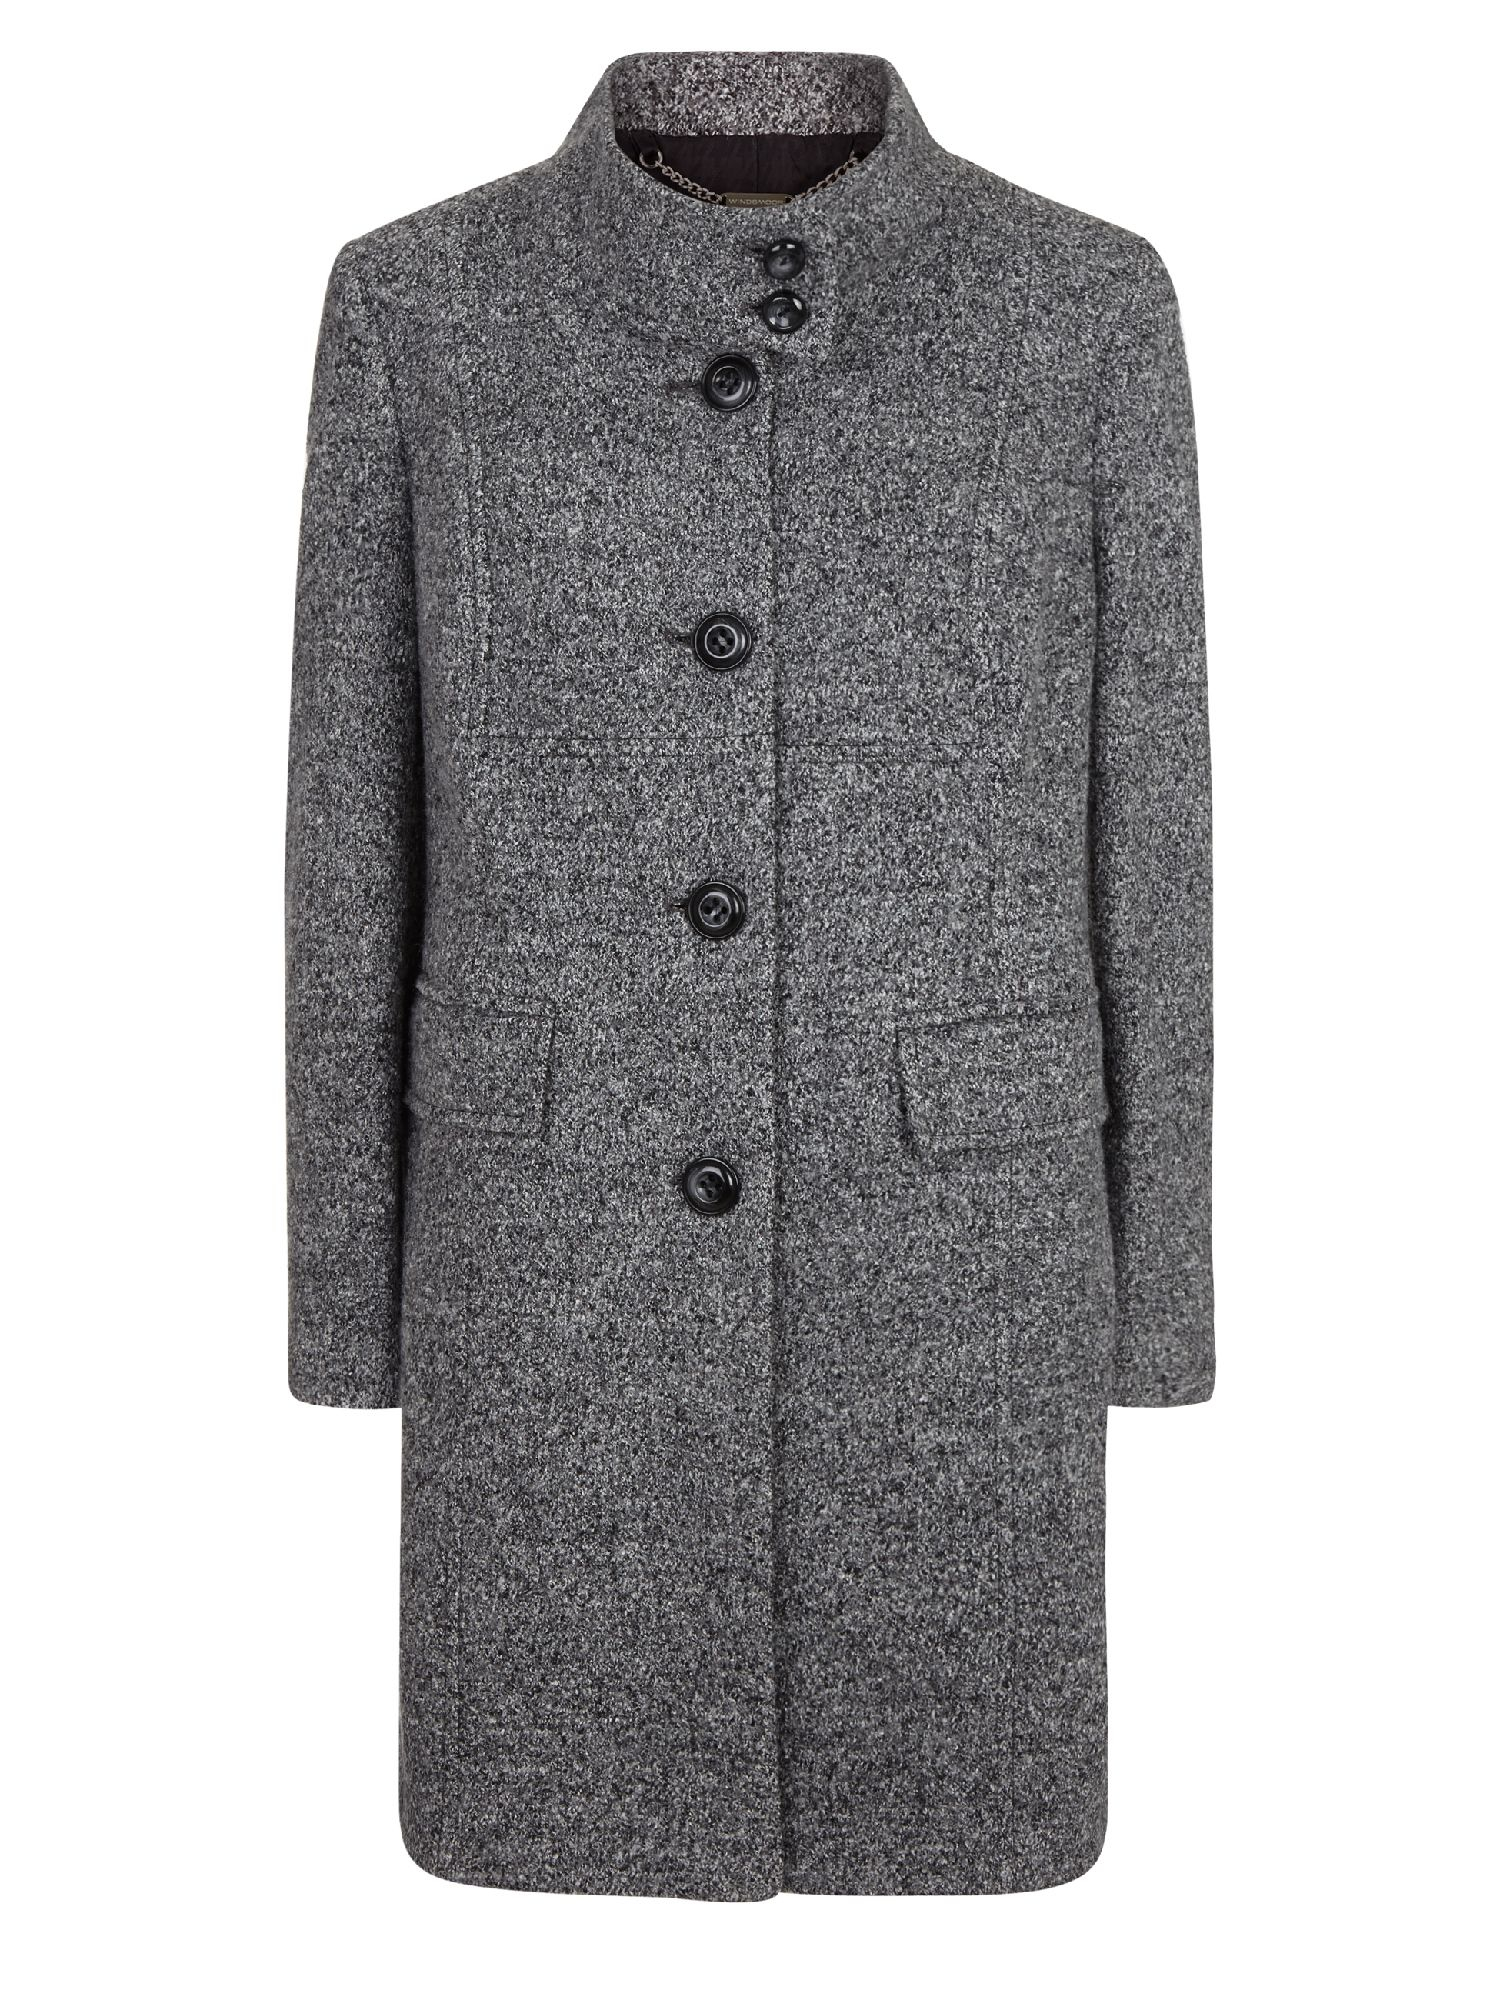 Windsmoor Textured Mid Wool Coat in Gray | Lyst